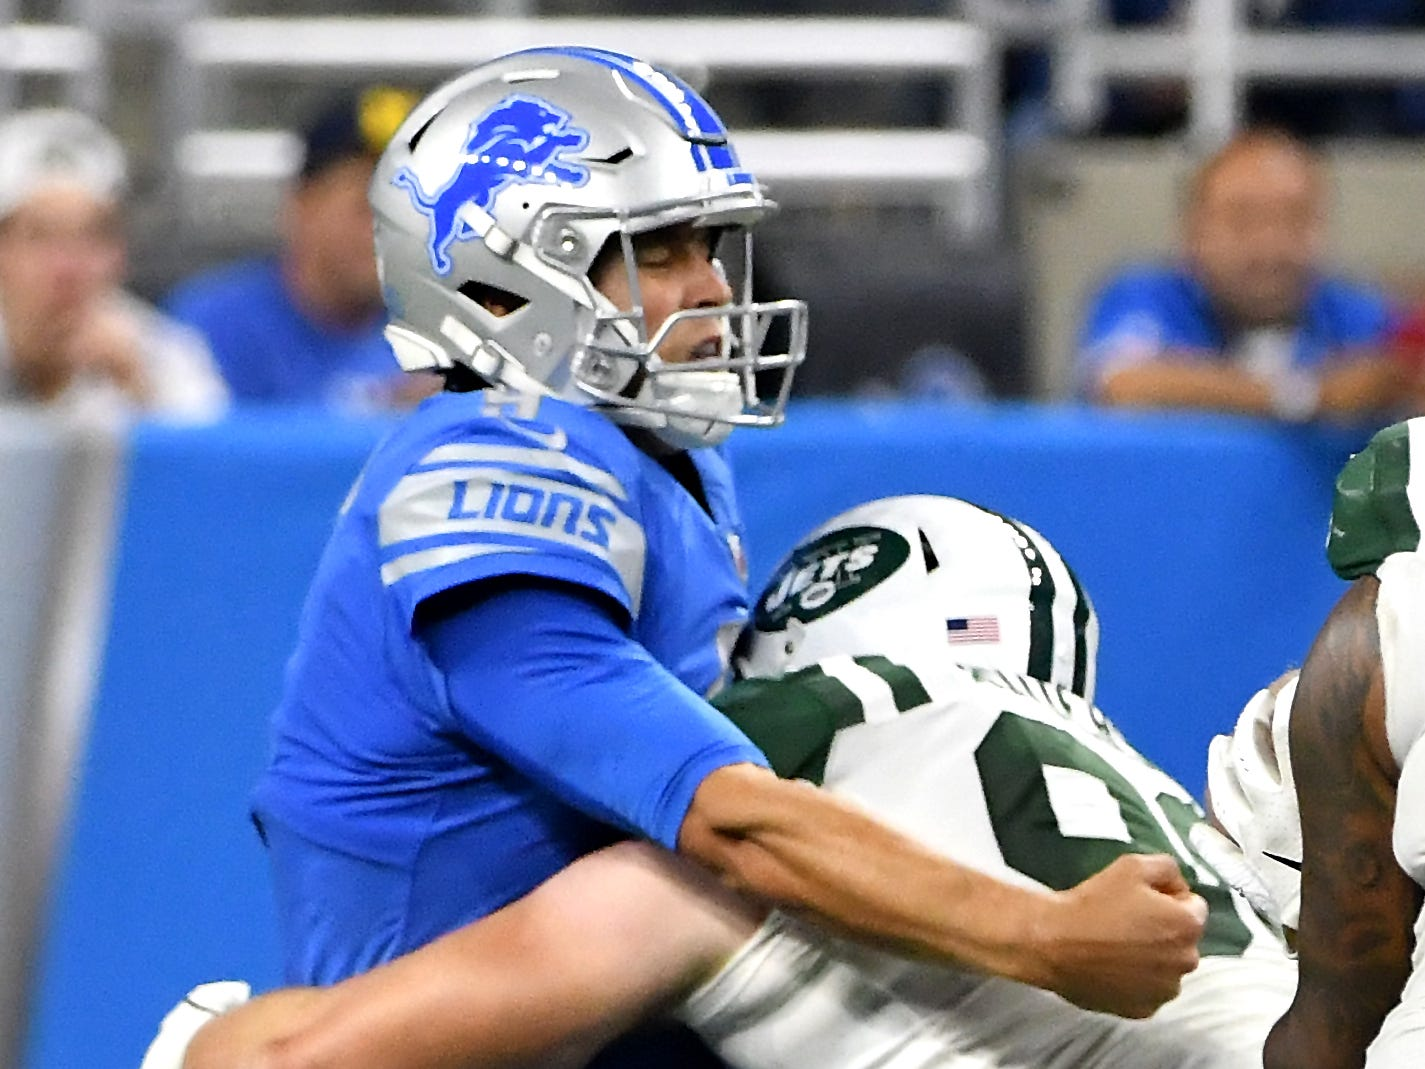 Lions' Matthew Stafford is hit by Jets' Henry Anderson after throwing in the third quarter.